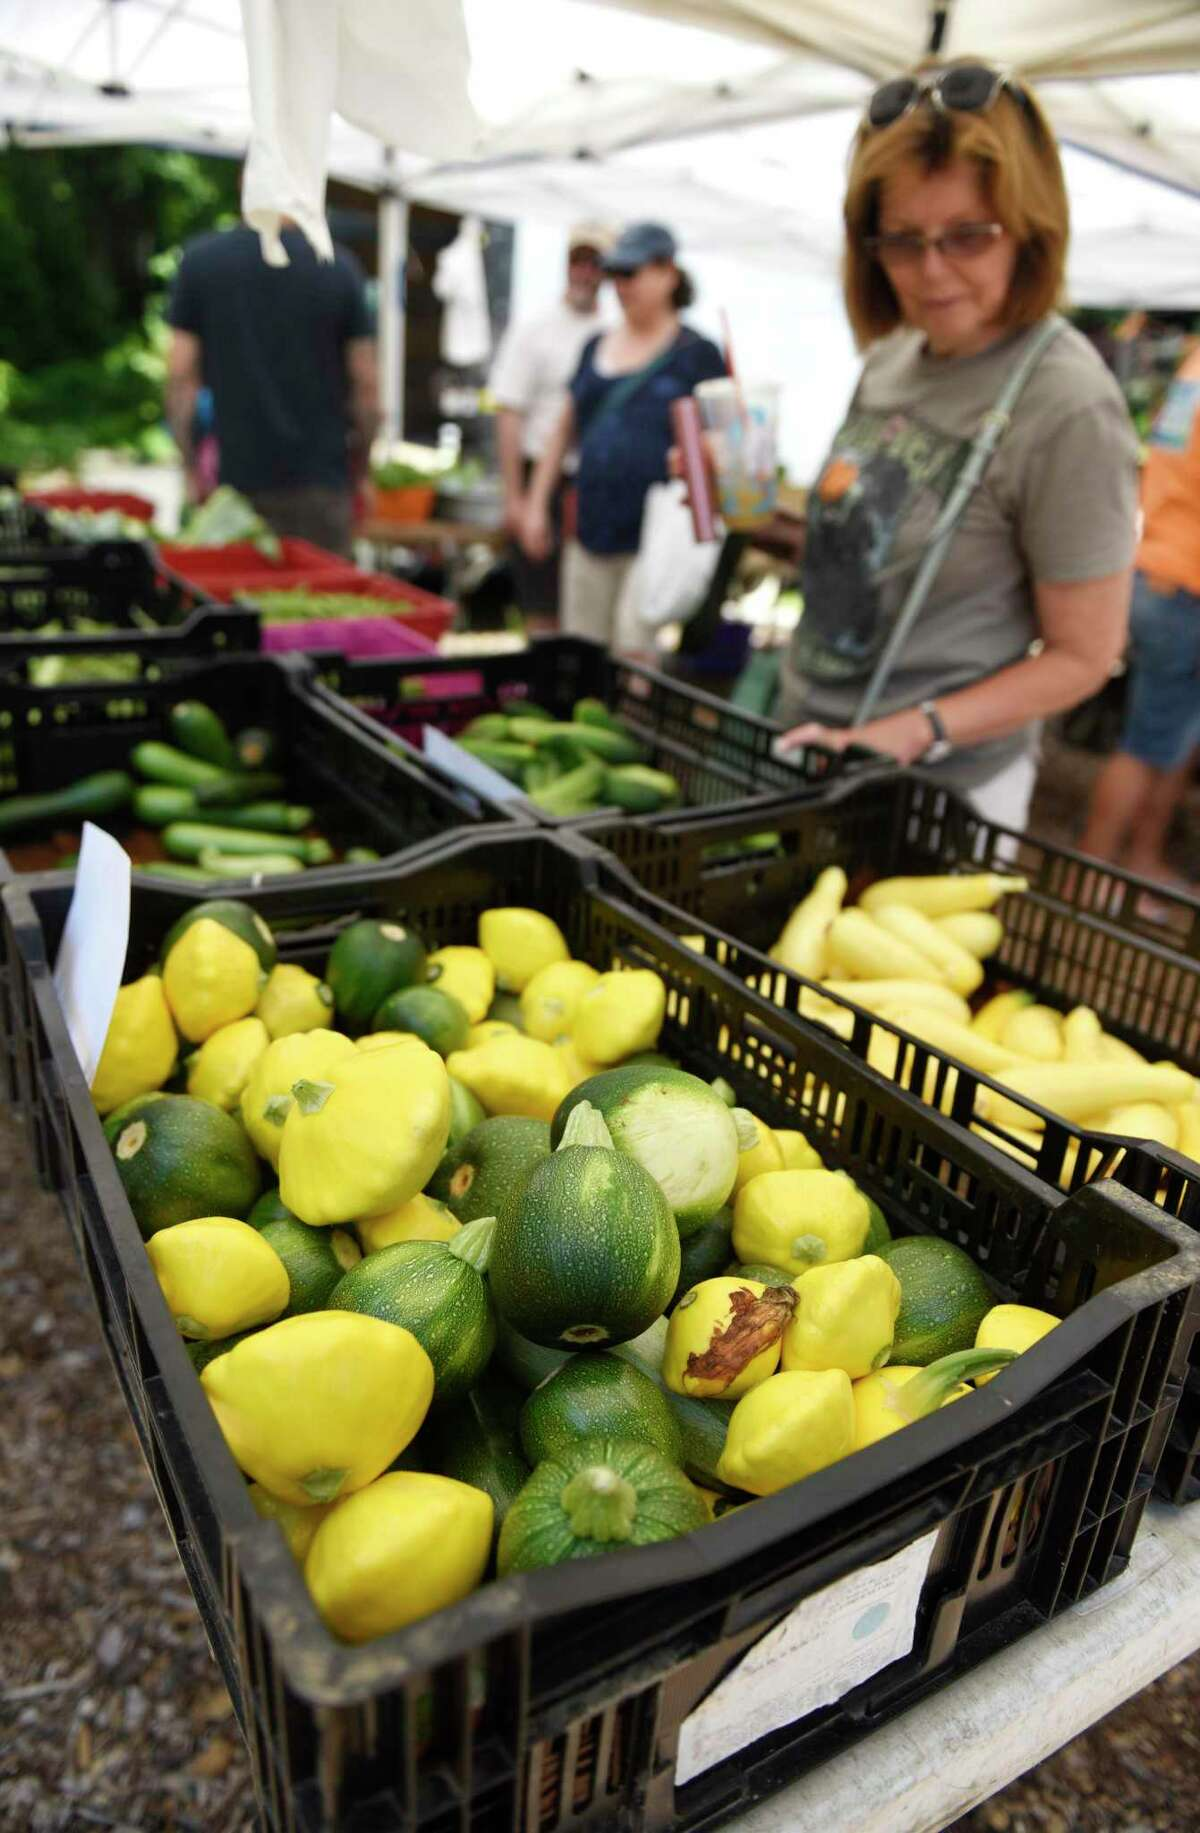 Customers browse the Smith's Acres stand at the Stamford Museum & Nature Center Sunday Farm Market in Stamford, Conn. Sunday, June 30, 2019.